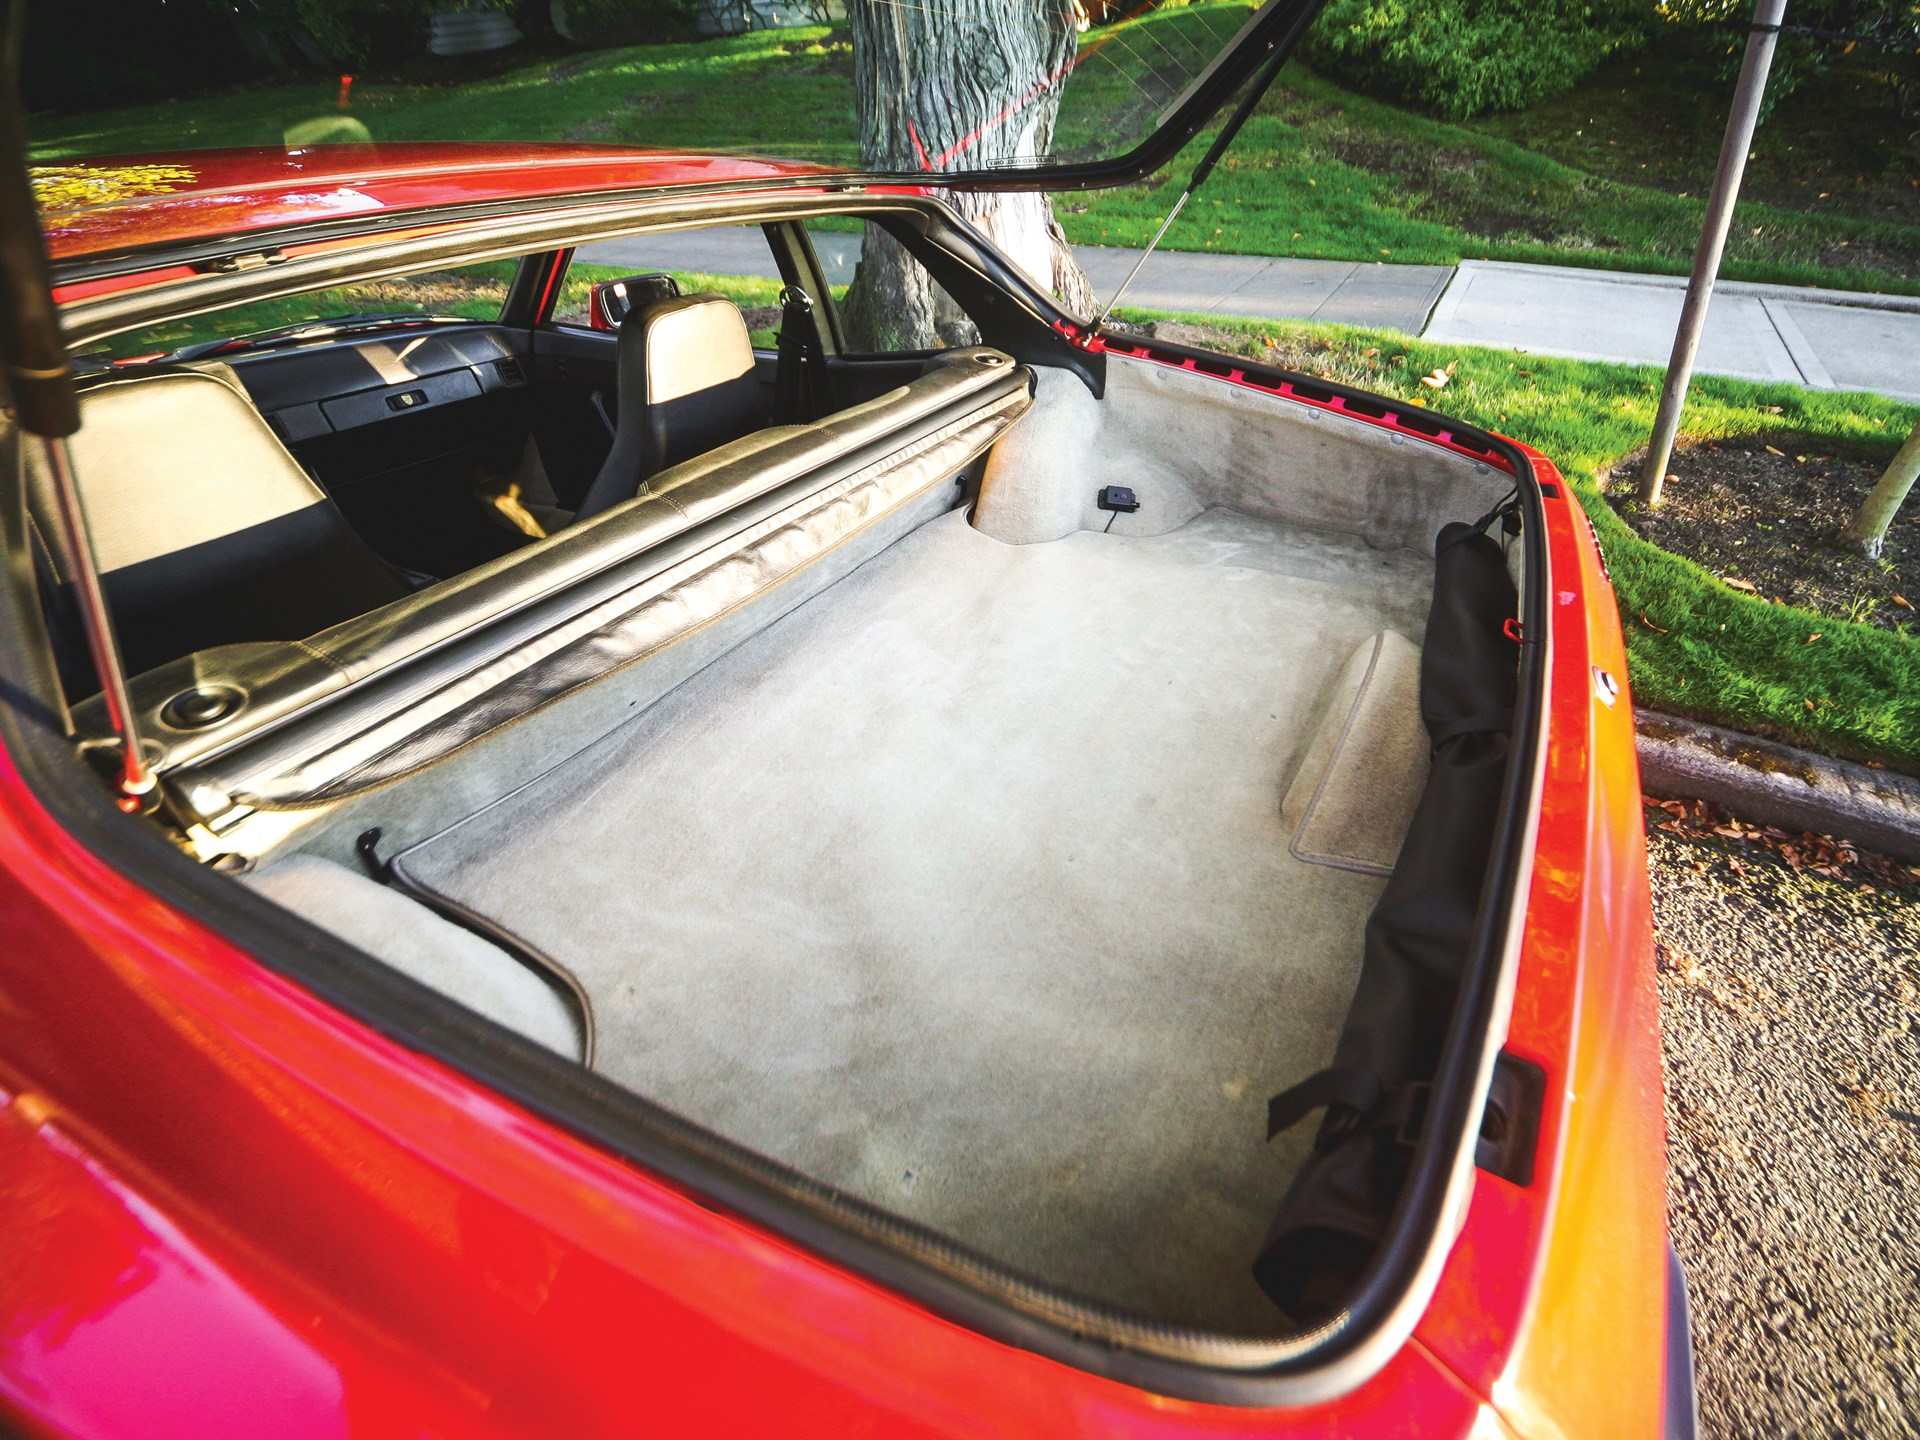 1984 Porsche 944 rear hatch